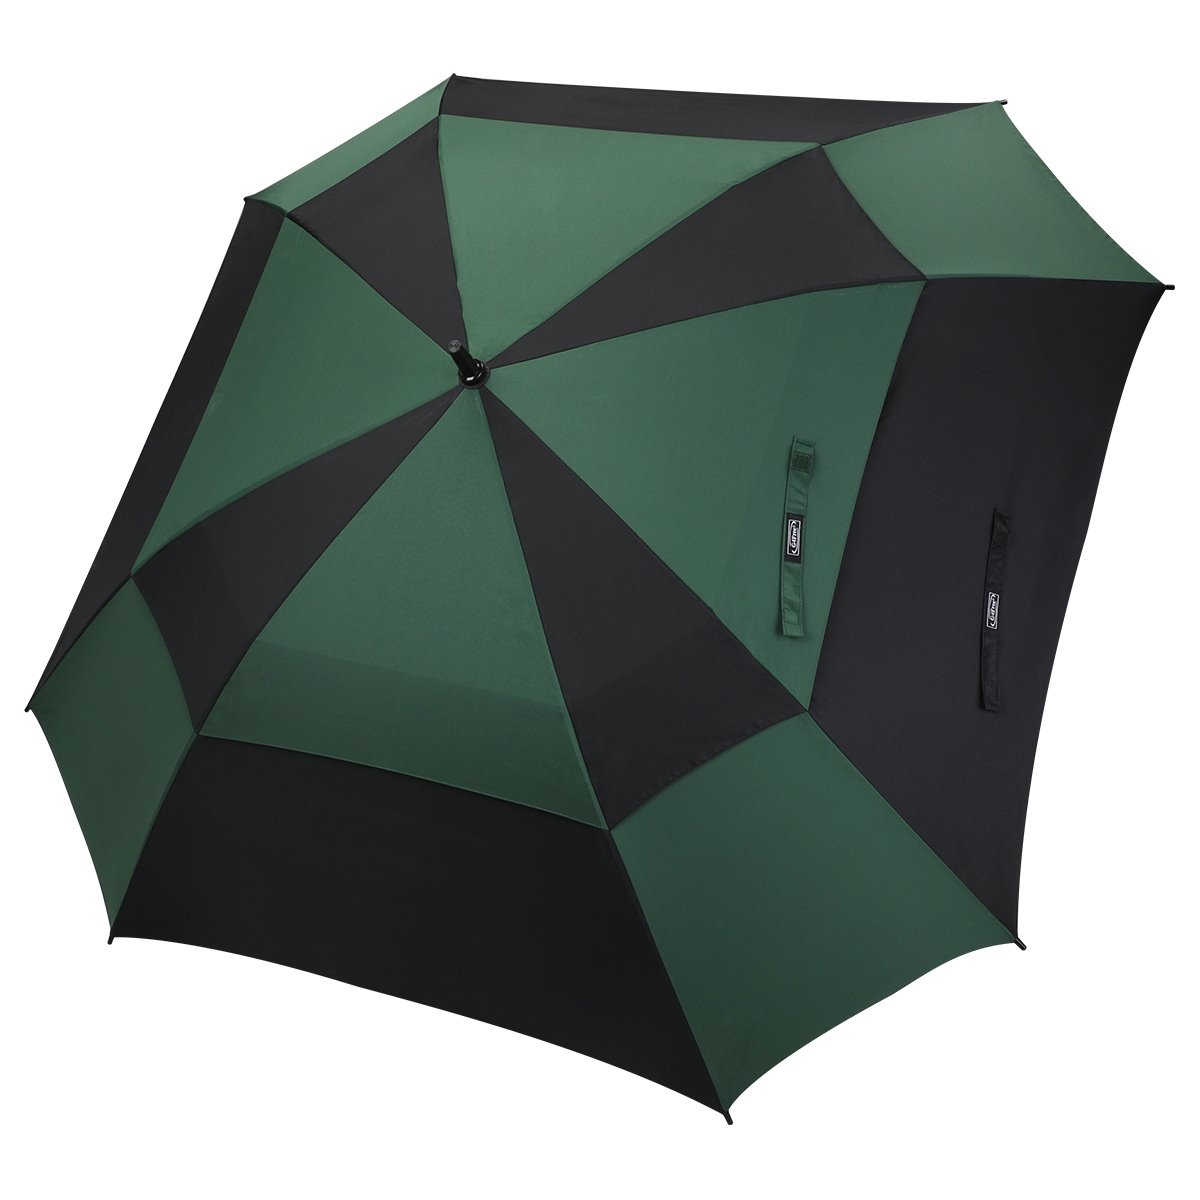 G4Free Extra Large Square-Shape Golf Umbrella 62 Inch Oversize Double Canopy Vented Umbrella Windproof Automatic Open Stick Umbrellas for Men Women by G4Free